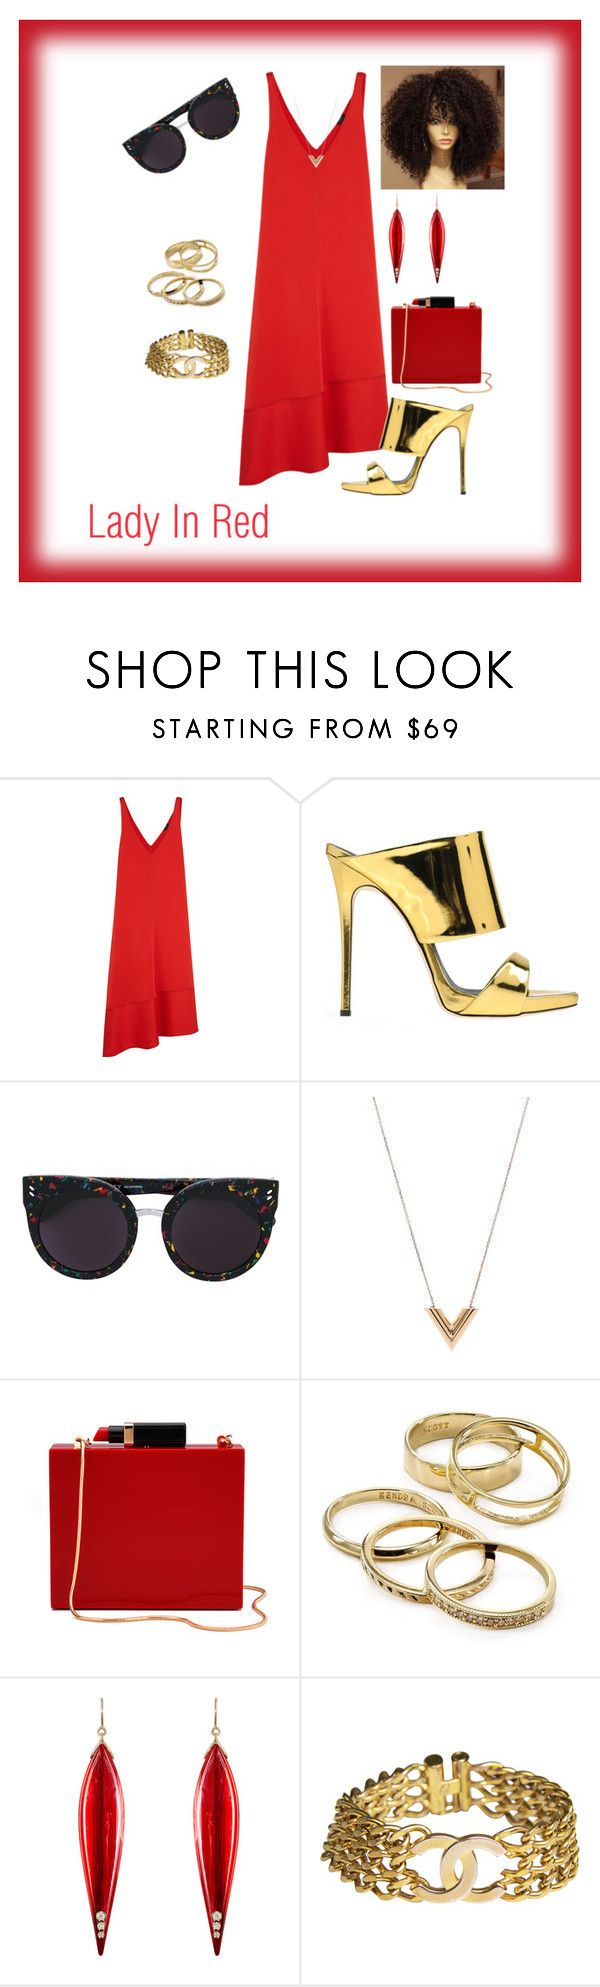 """Lady in Red"" by constance-dangerfield ❤ liked on Polyvore featuring Joseph, Giuseppe Zanotti, STELLA McCARTNEY, Louis Vuitton, Lulu Guinness, Kendra Scott, Mark Davis and Chanel"